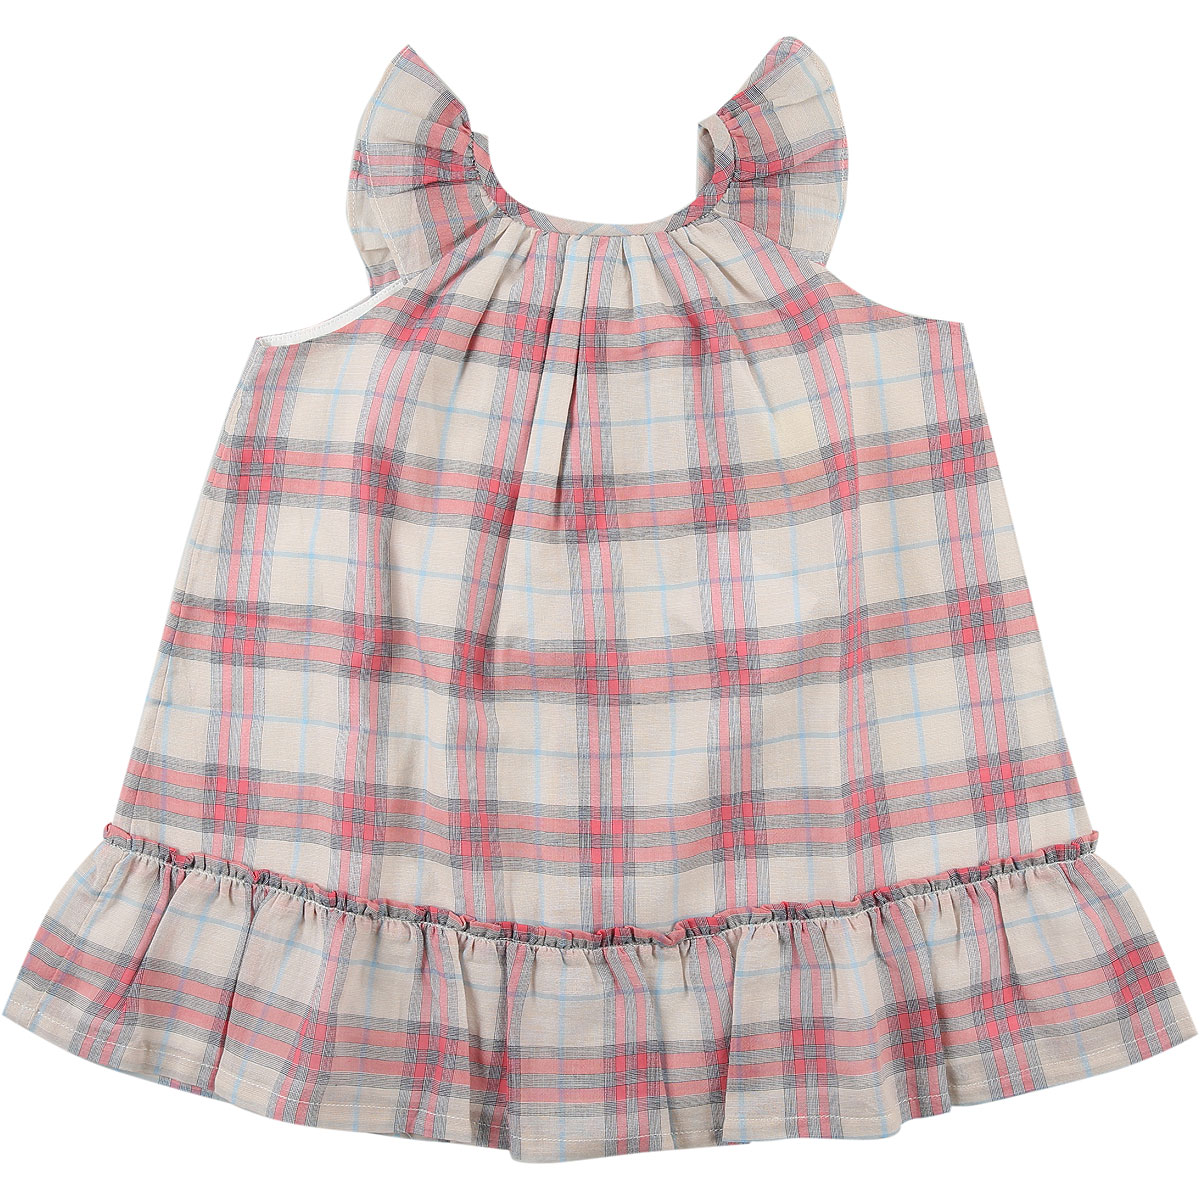 Burberry Baby Dress for Girls On Sale in Outlet, Pink, Cotton, 2019, 2Y 6M 9M